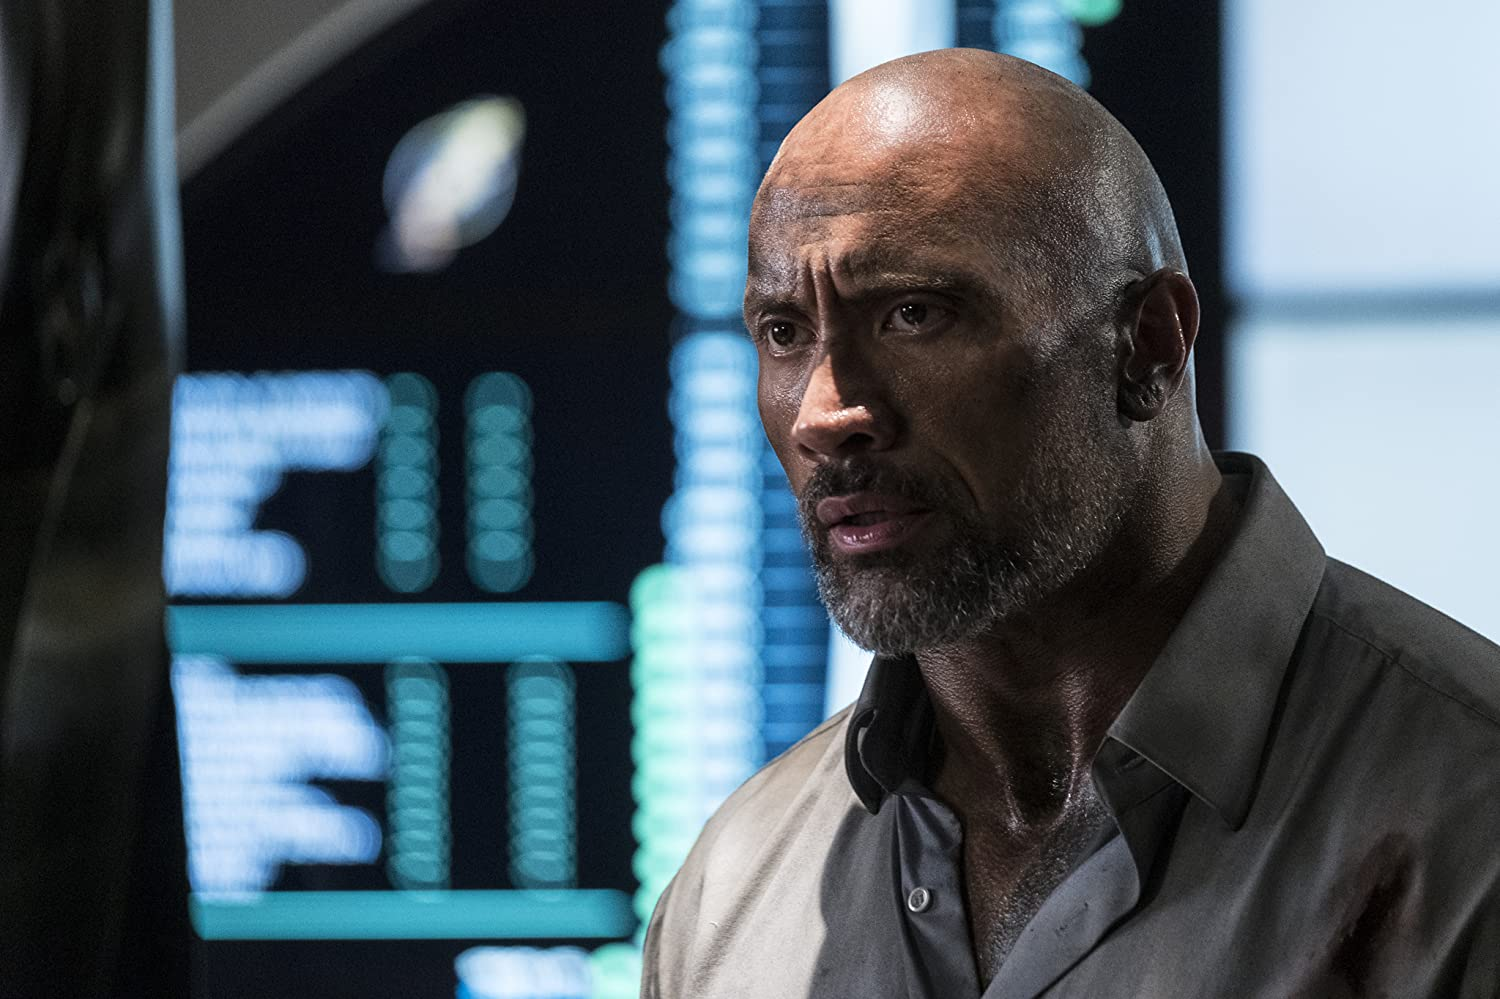 Dwayne Johnson in Skyscraper (2018)